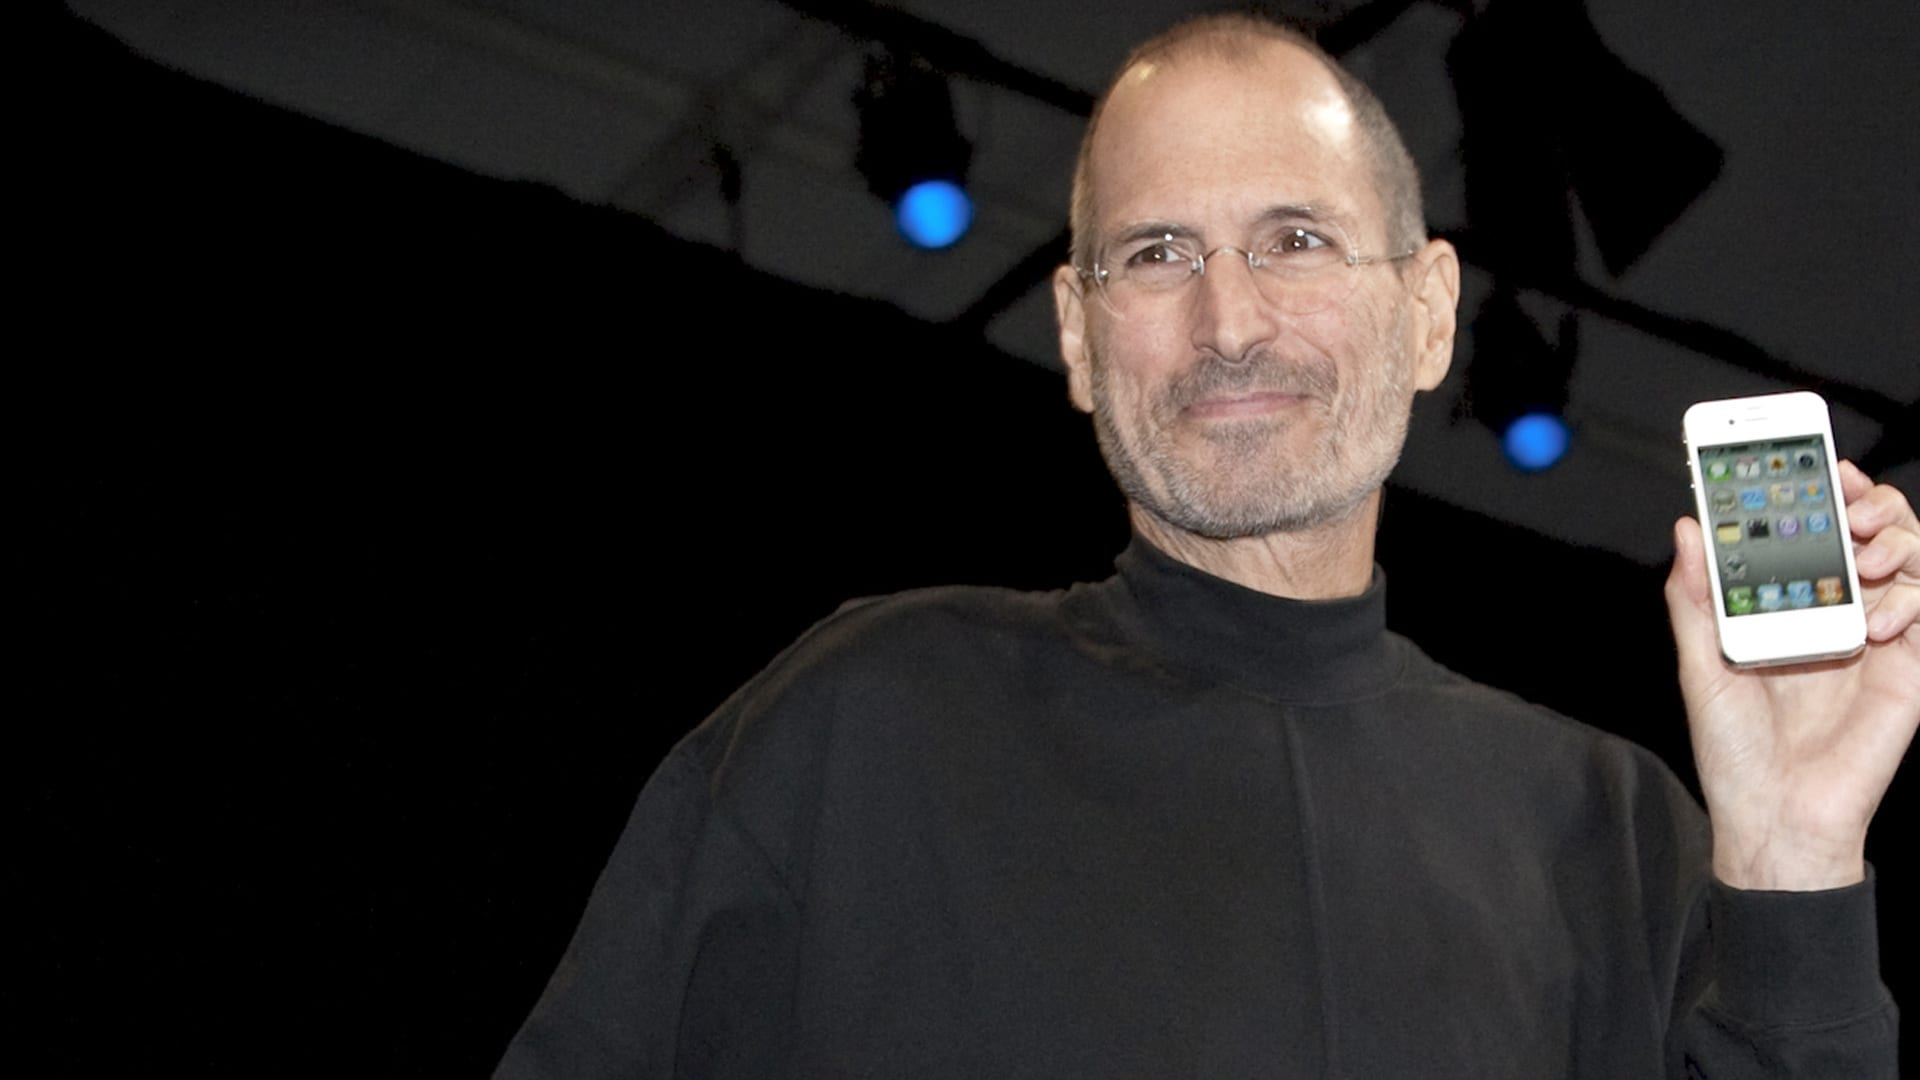 Why Cant Steve Jobs Make Iphone At >> Apple Launched New Iphones Today A Product Steve Jobs Wanted Stopped